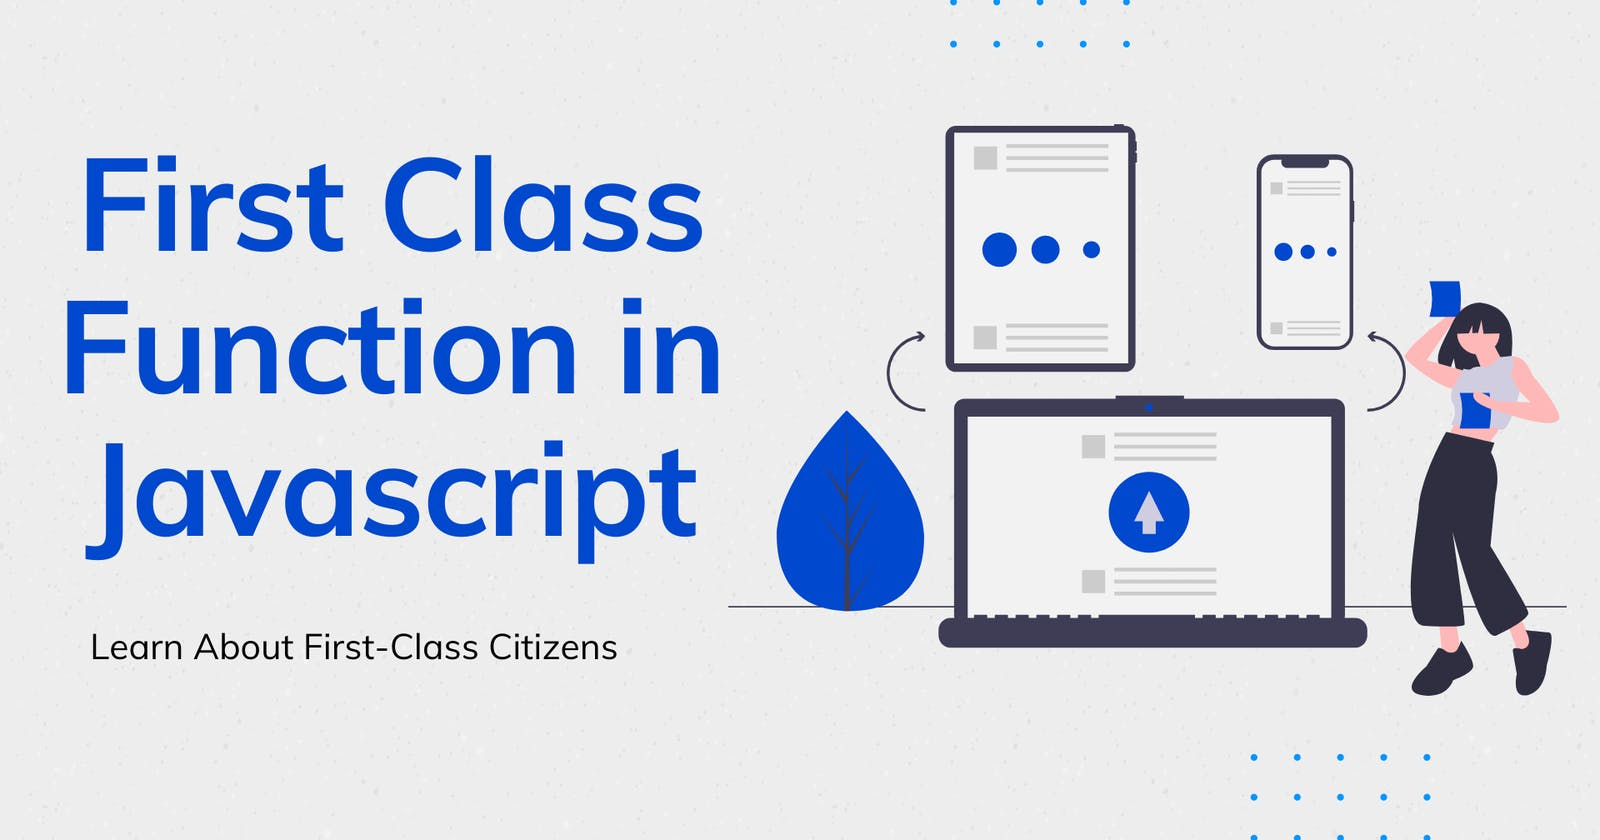 First-Class Functions in Javascript